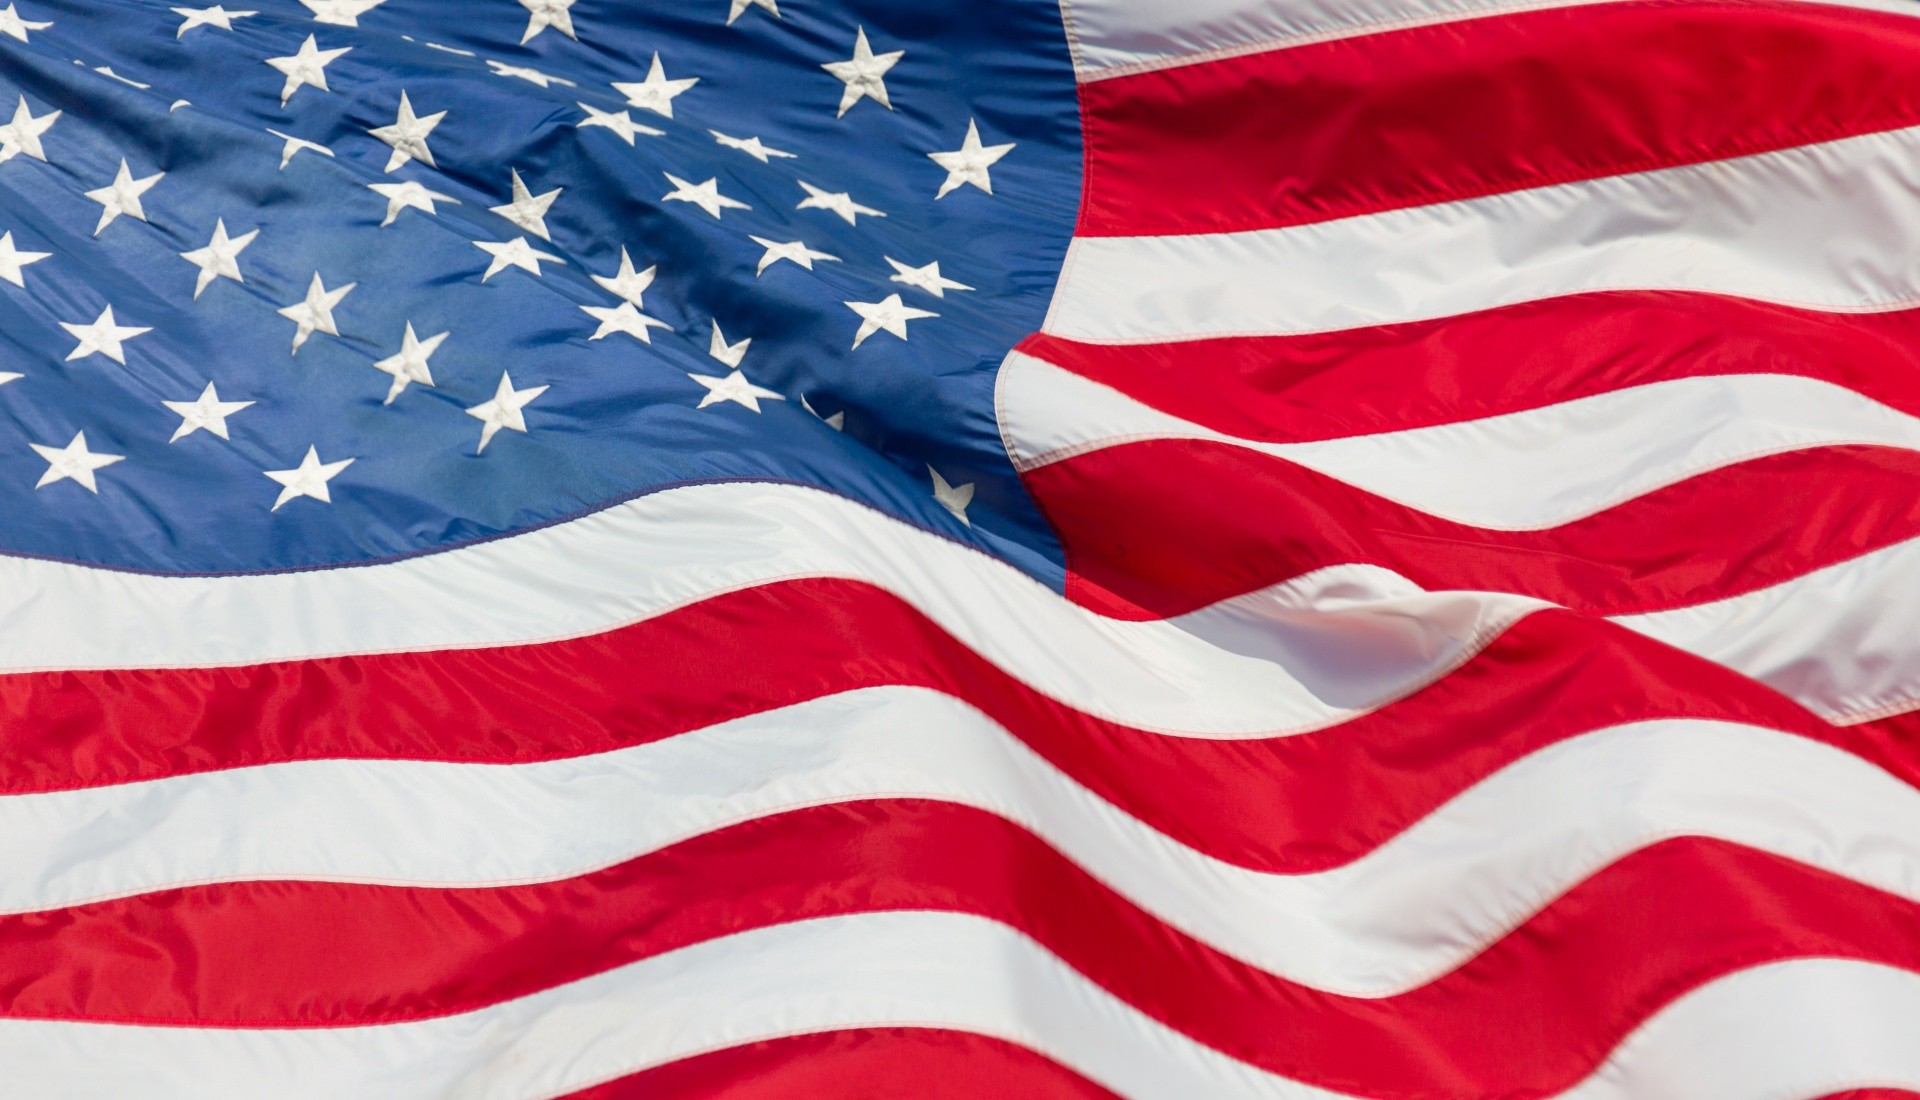 cool american flag backgrounds